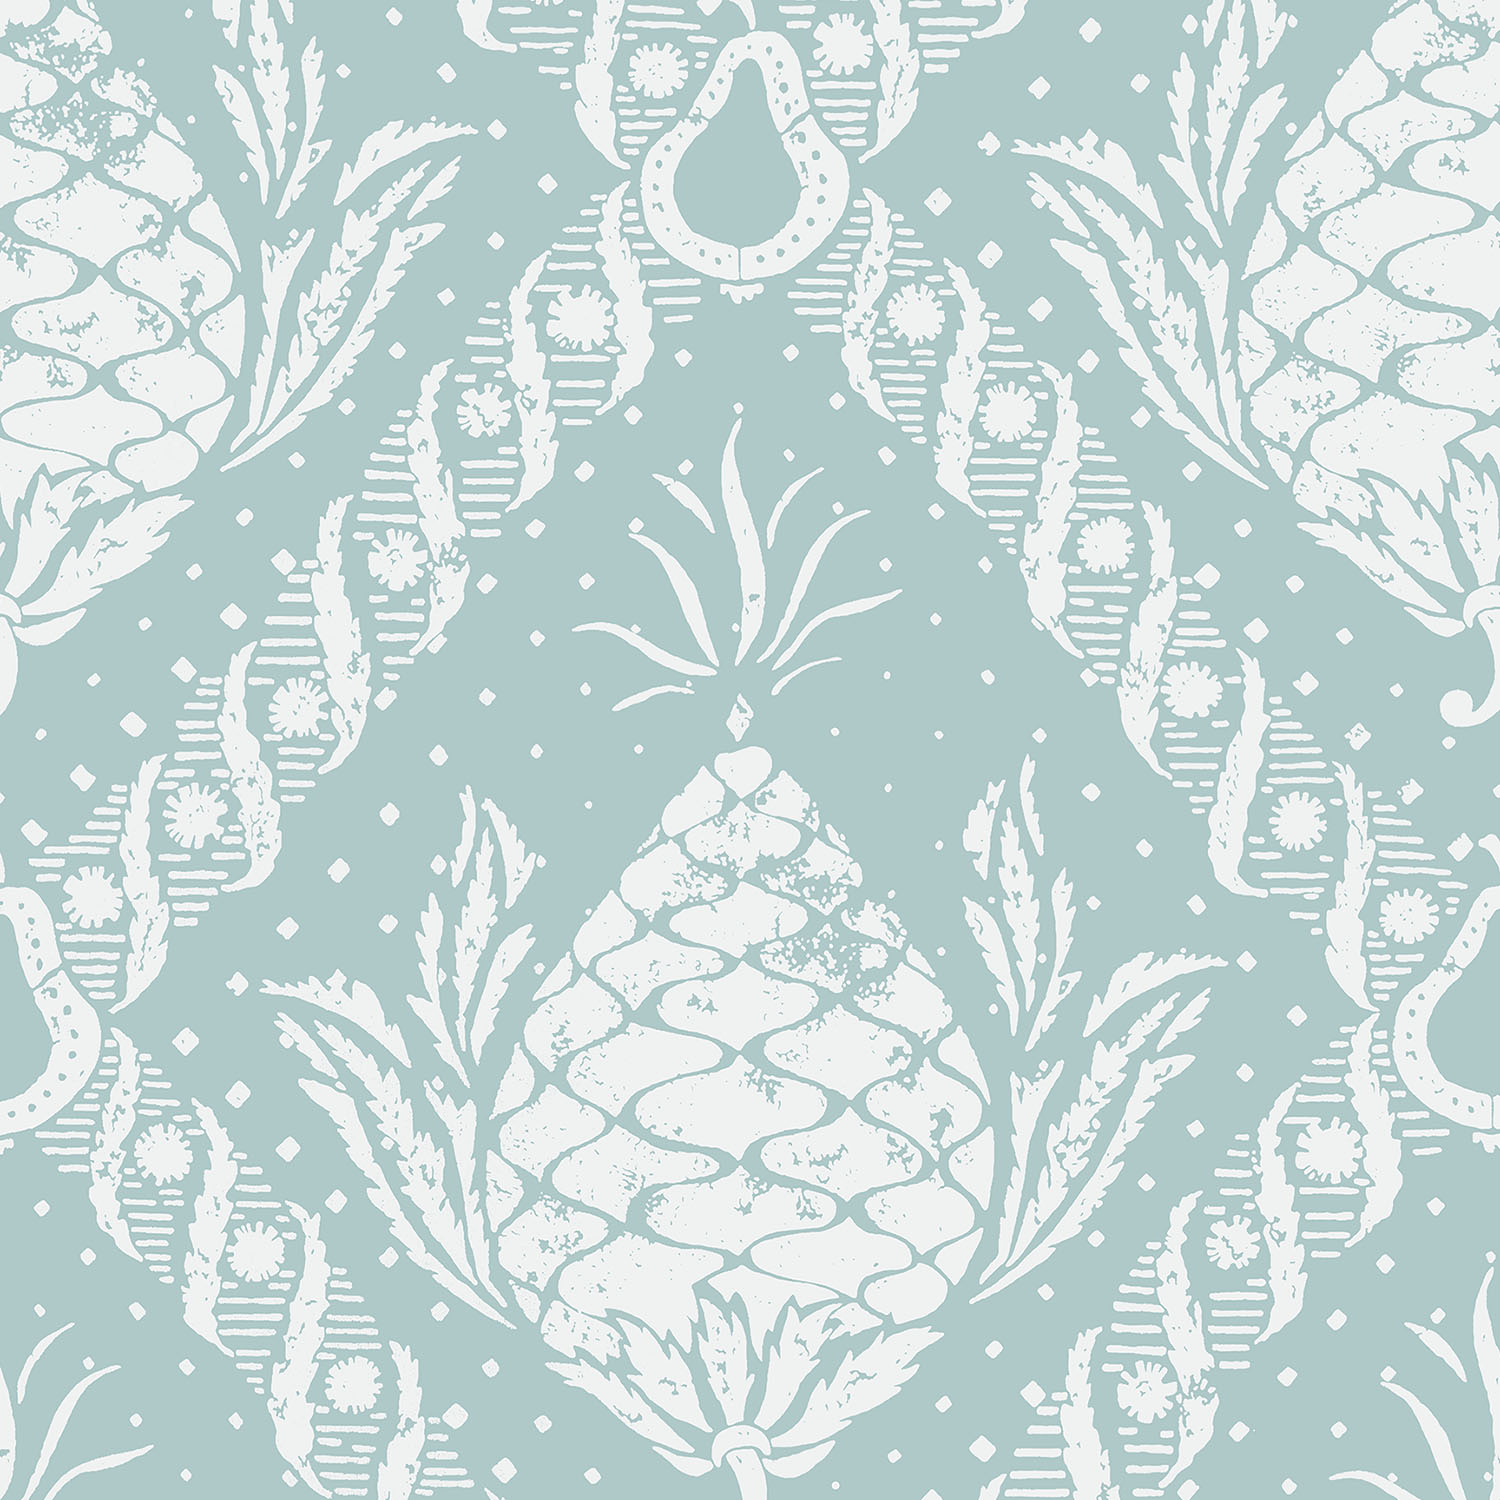 WH 291 Pineapple Damask